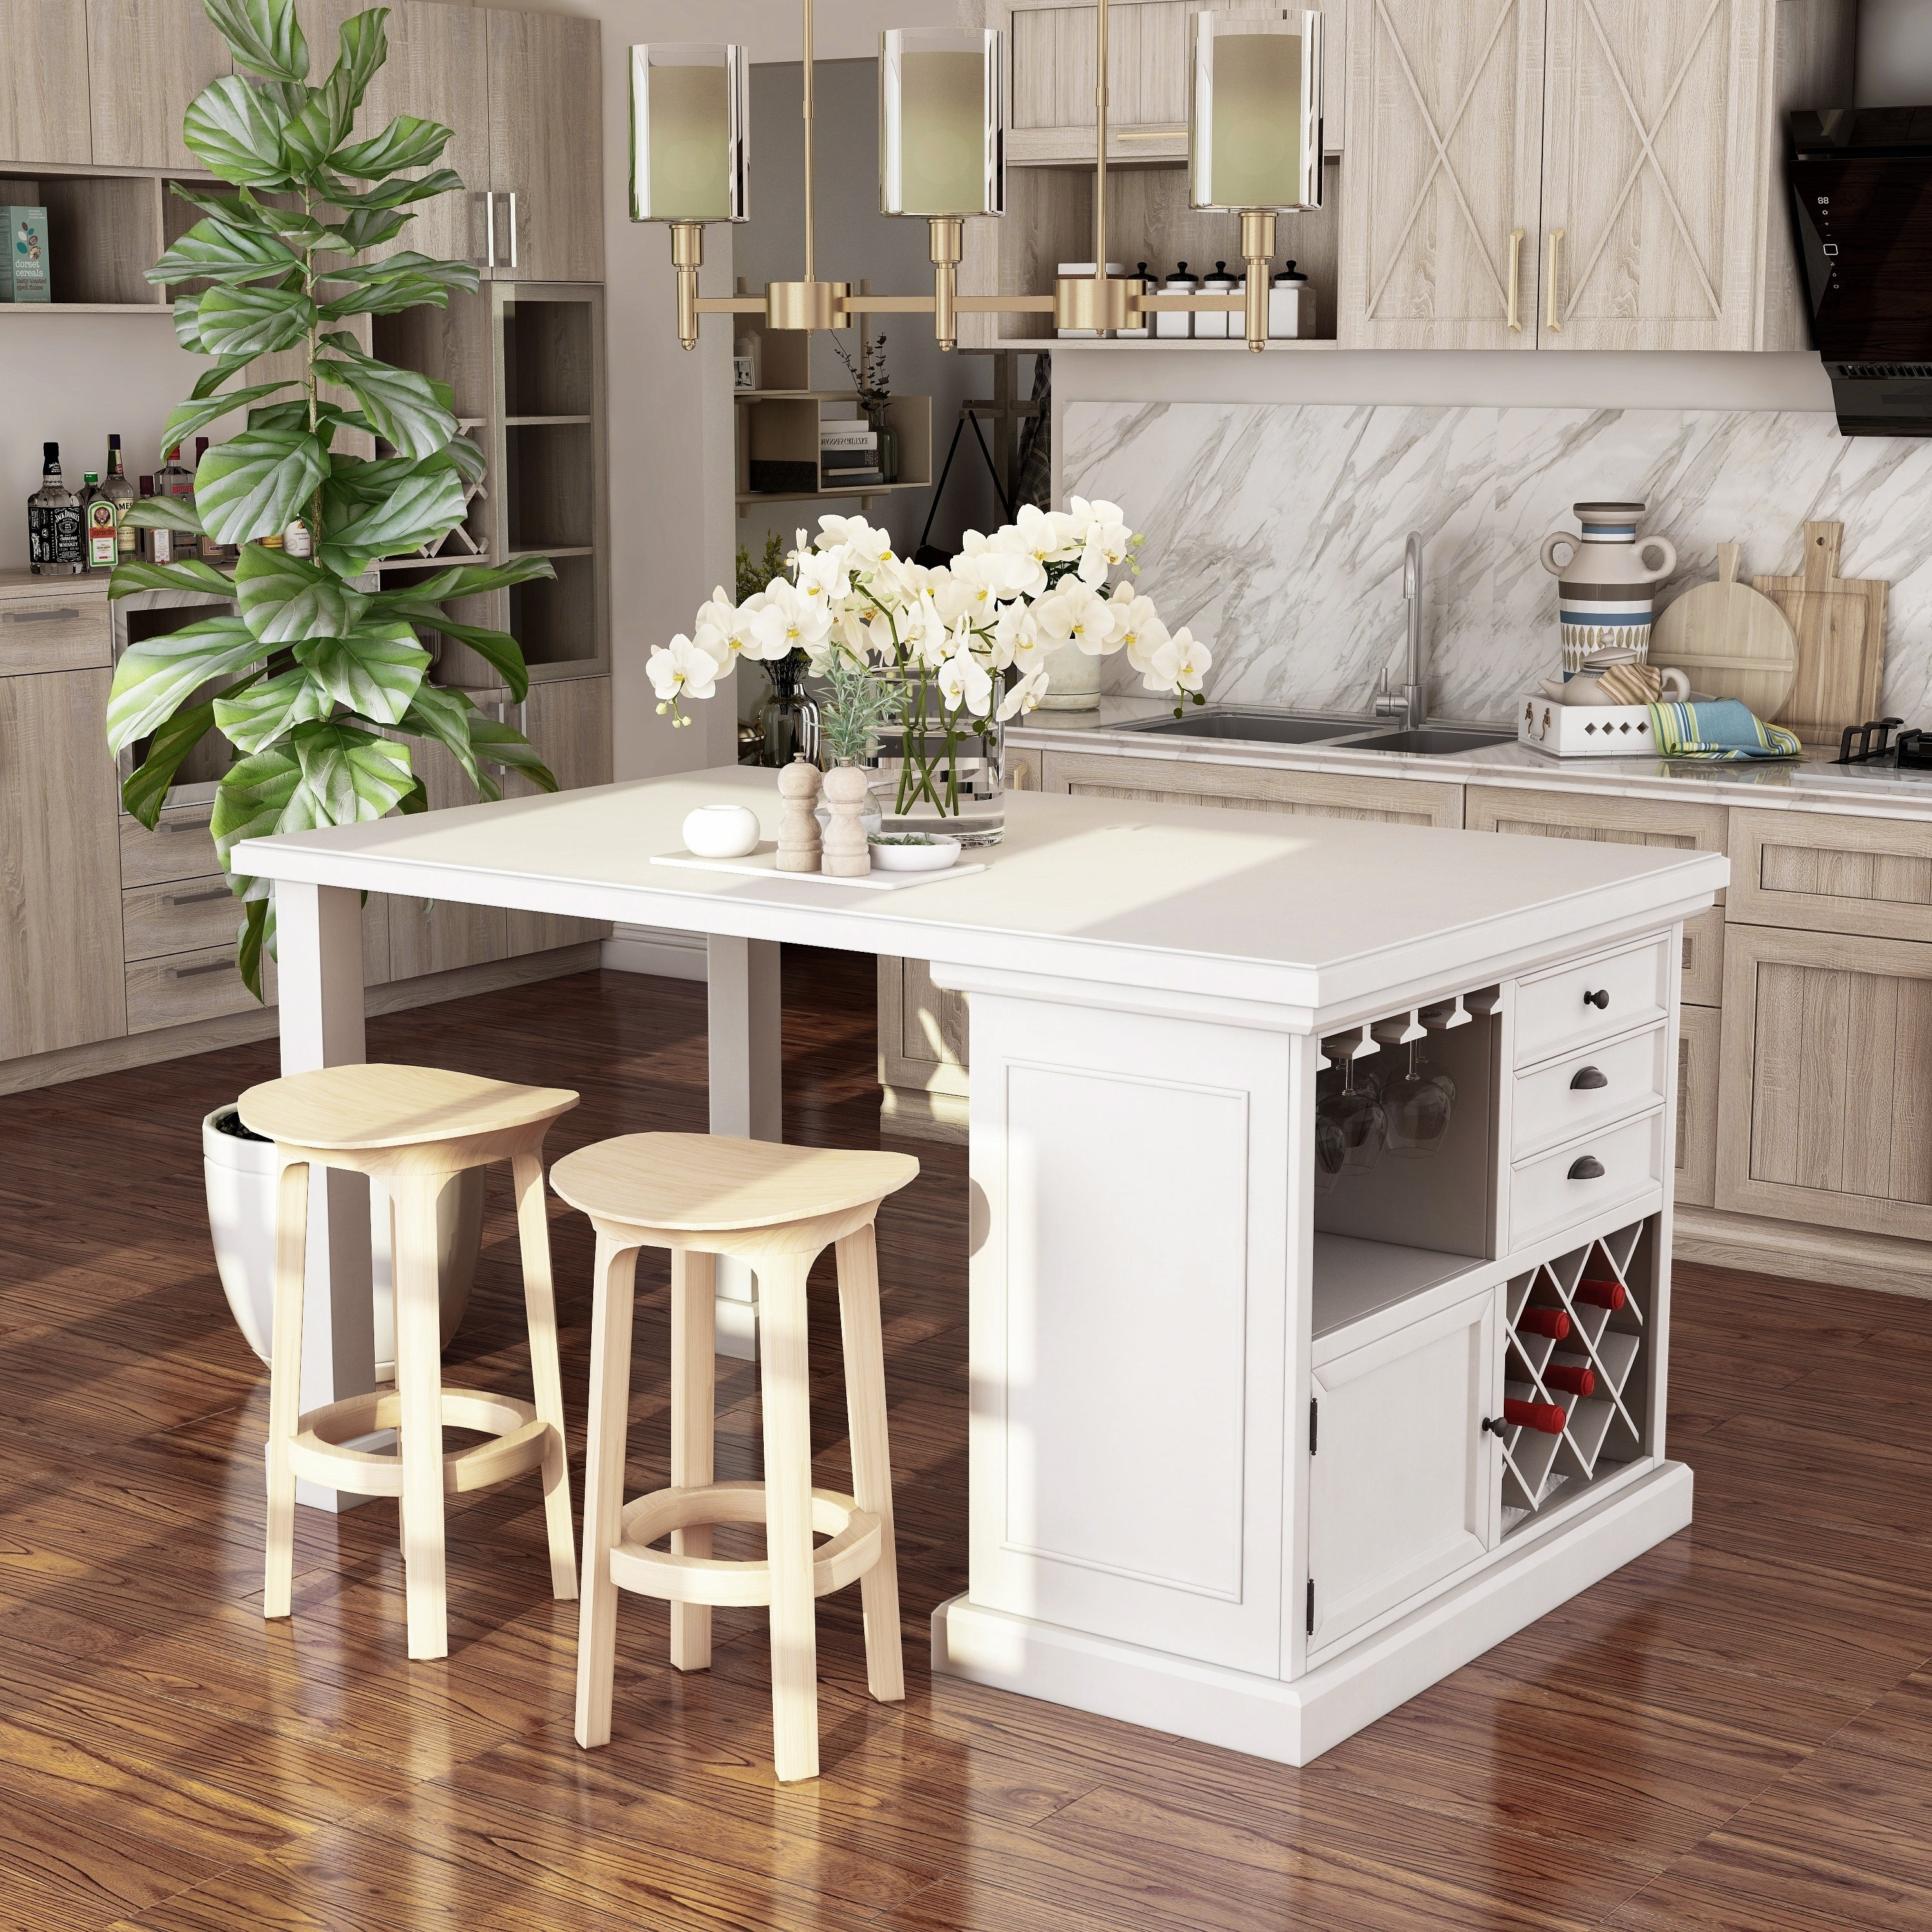 Furniture Of America Tia Transitional White 66 Inch Kitchen Island Overstock 20331449